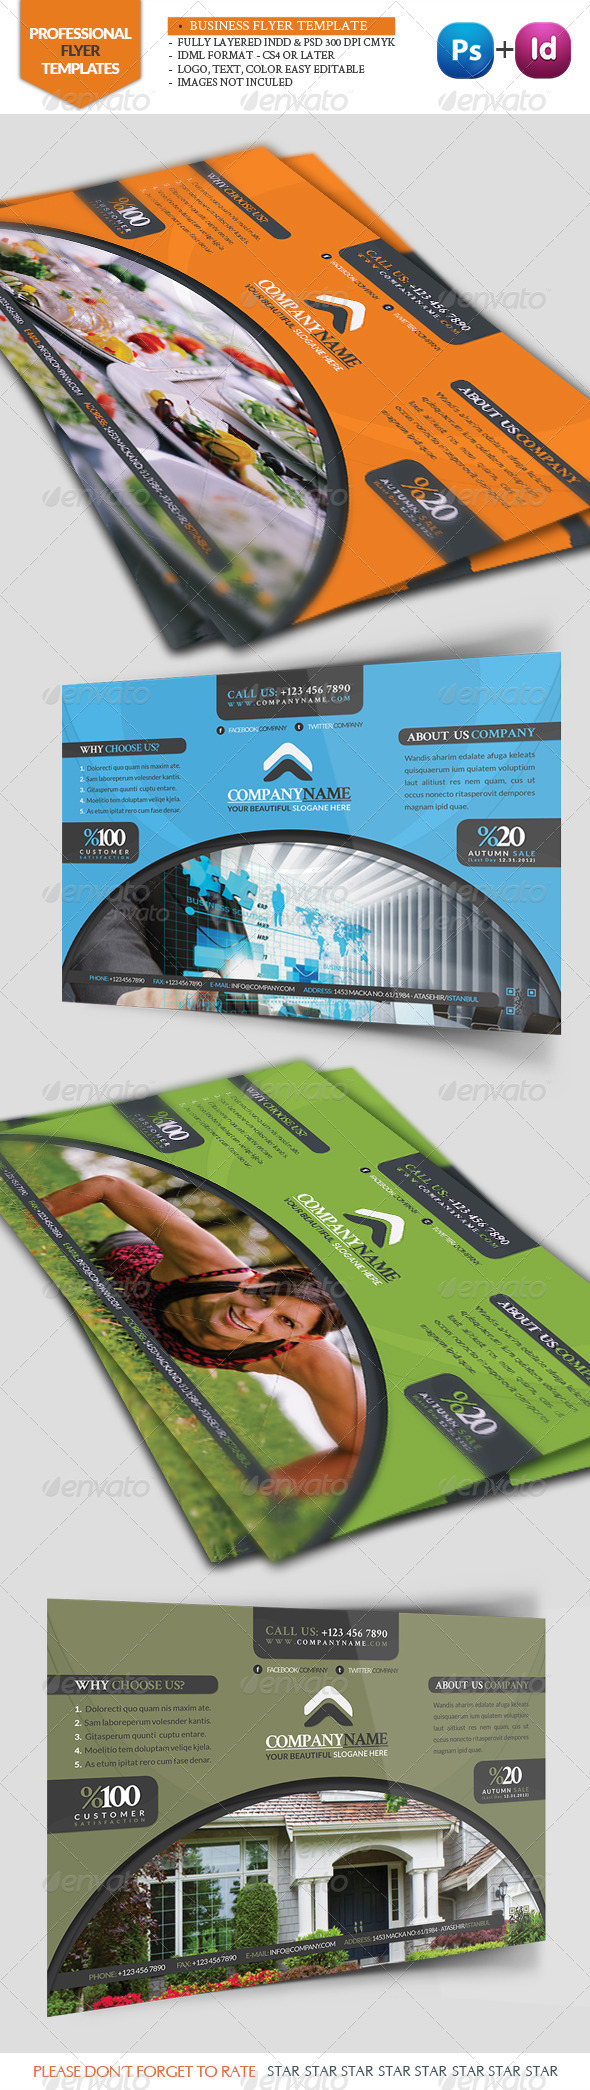 GraphicRiver Business Flyer Template 3359772